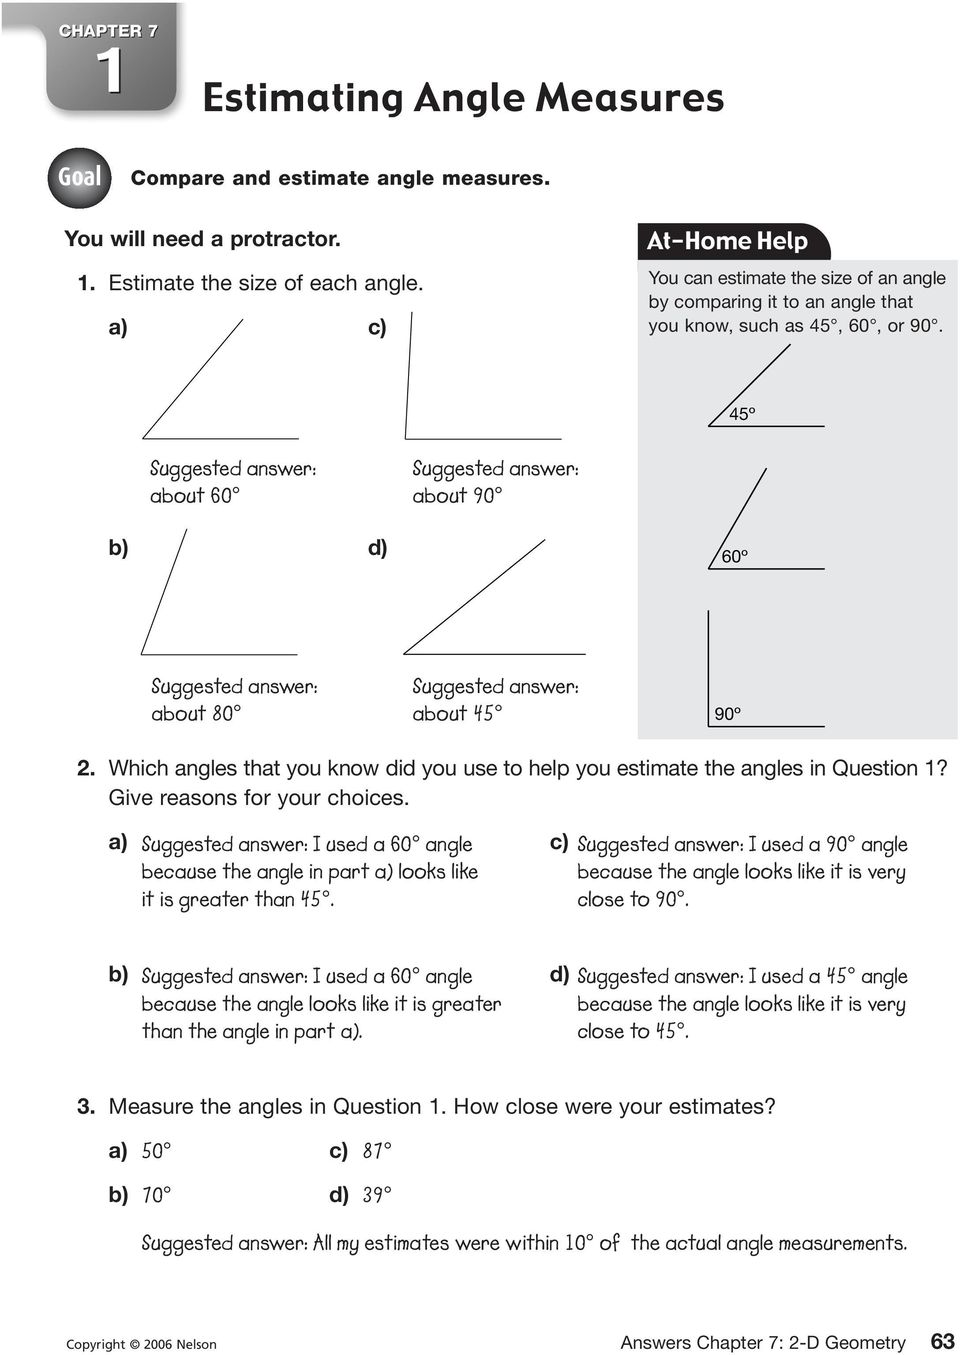 Which angles that you know did you use to help you estimate the angles in Question 1? Give reasons for your choices. a) I used a angle c) because the angle in part a) looks like it is greater than 45.